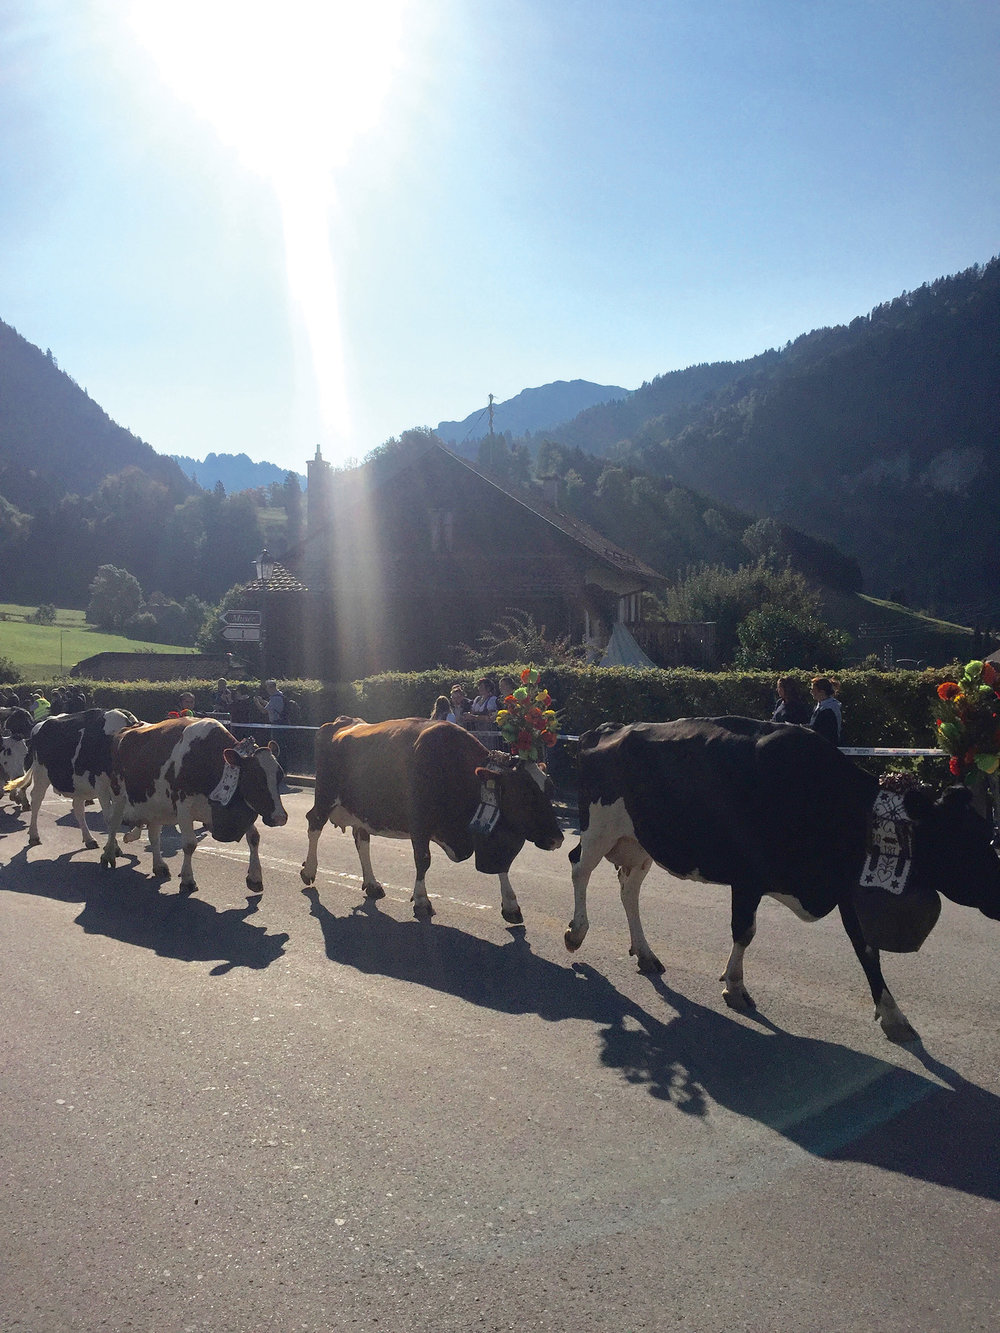 Cows on parade at Desalpes.